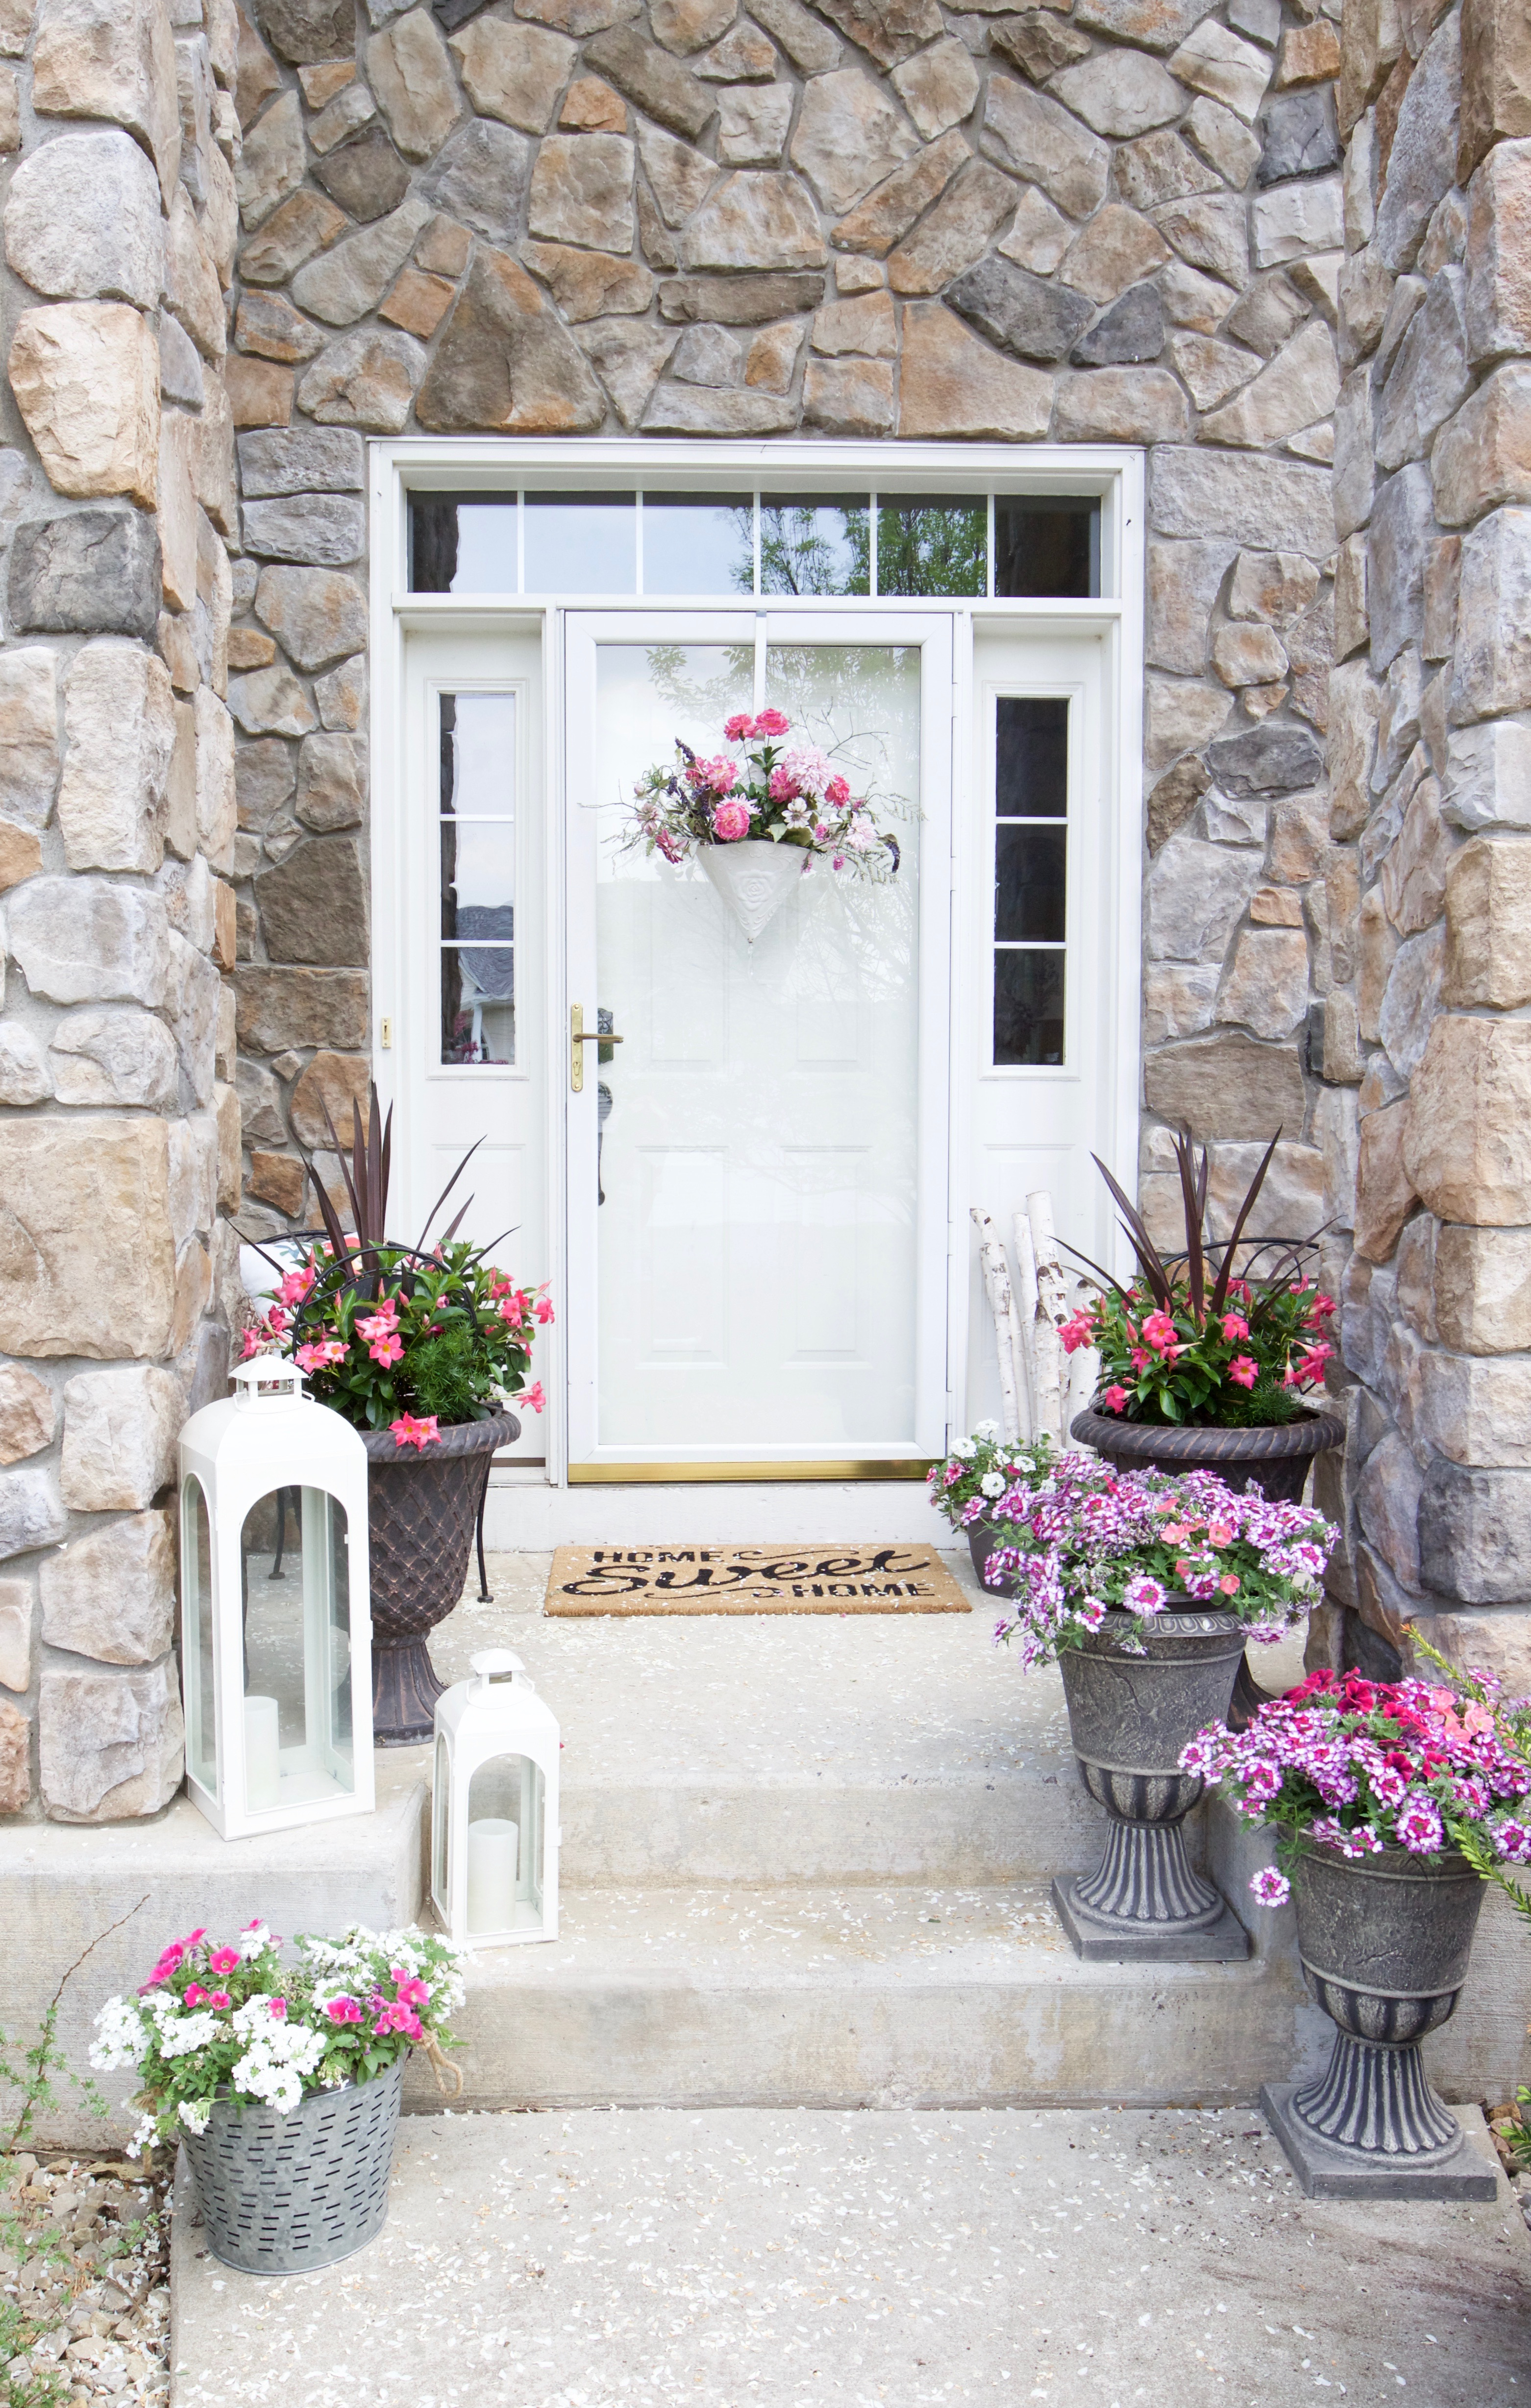 Decorating with Potted Flowers on the Front Porch - A Gardening and ...